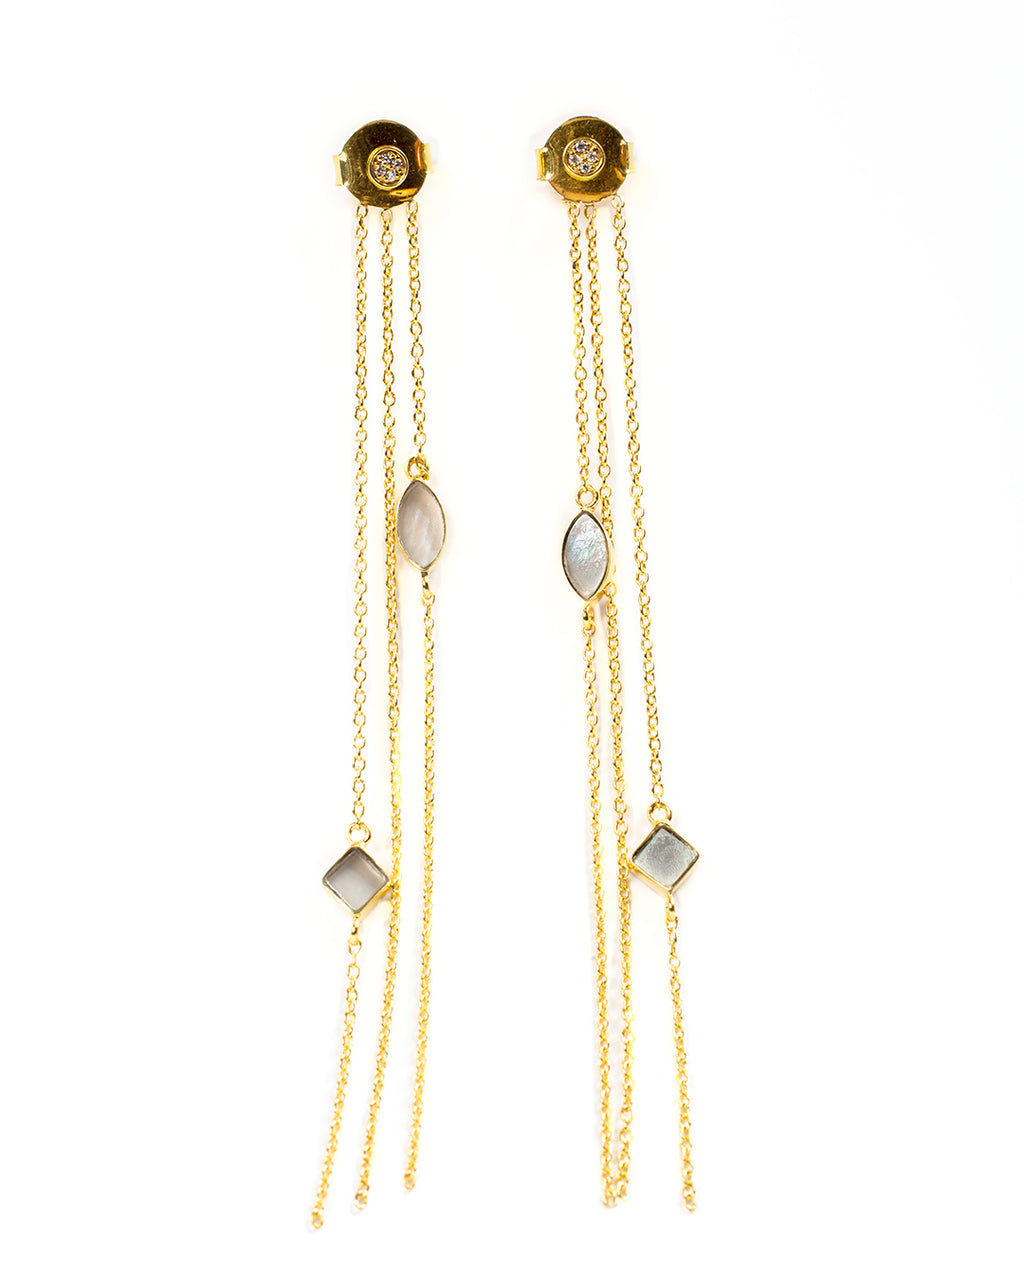 Multi-strand dangling earrings with stones – 002